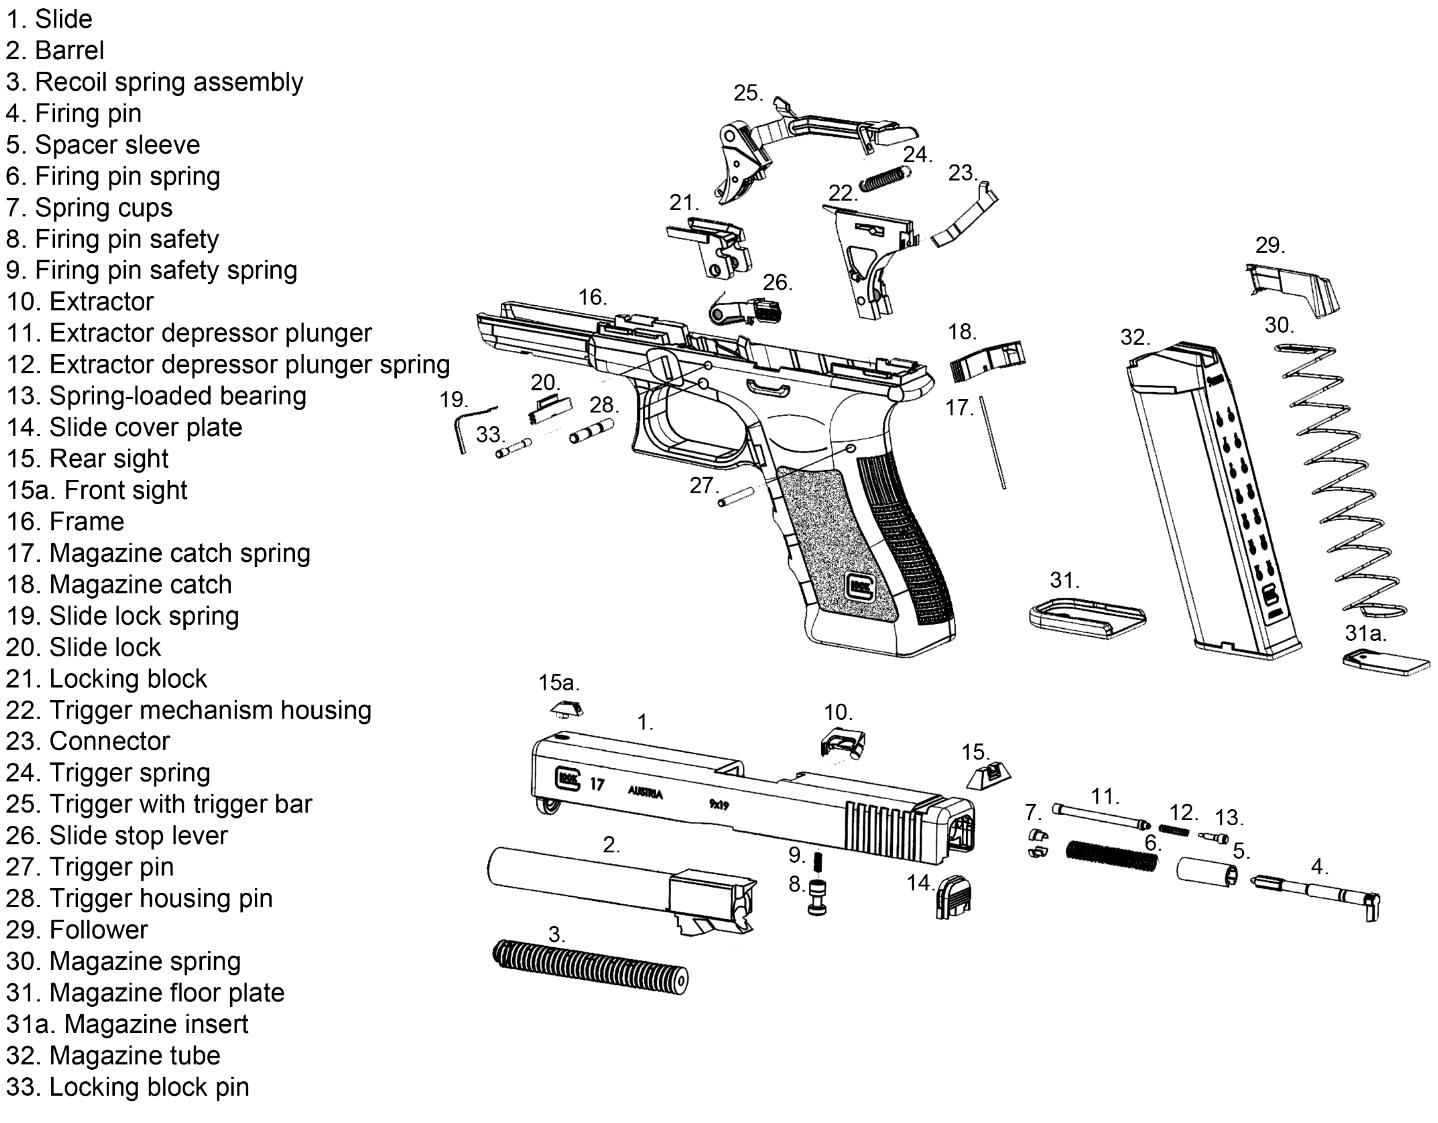 Wondrous Glock 17 Exploded Diagram Firearms Guns Firearms Glock 22 Wiring 101 Capemaxxcnl